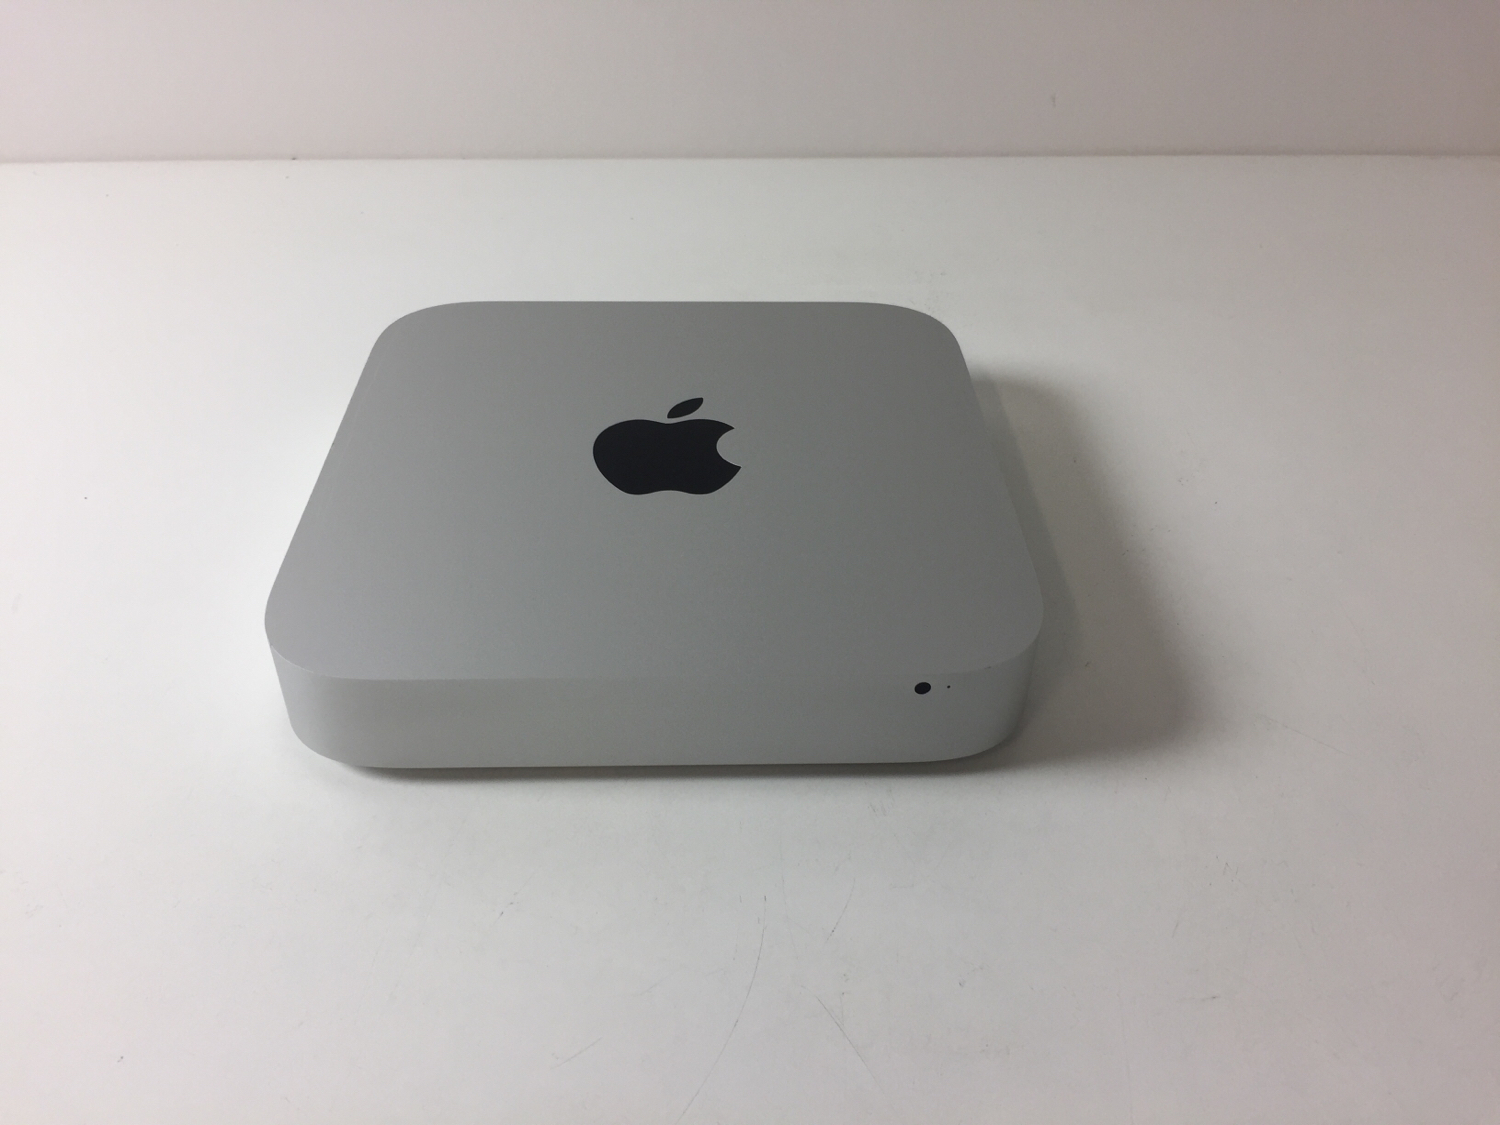 Mac Mini Late 2014 (Intel Core i5 1.4 GHz 4 GB RAM 500 GB HDD), Intel Core i5 1.4 GHz, 4 GB RAM, 500 GB HDD, imagen 1